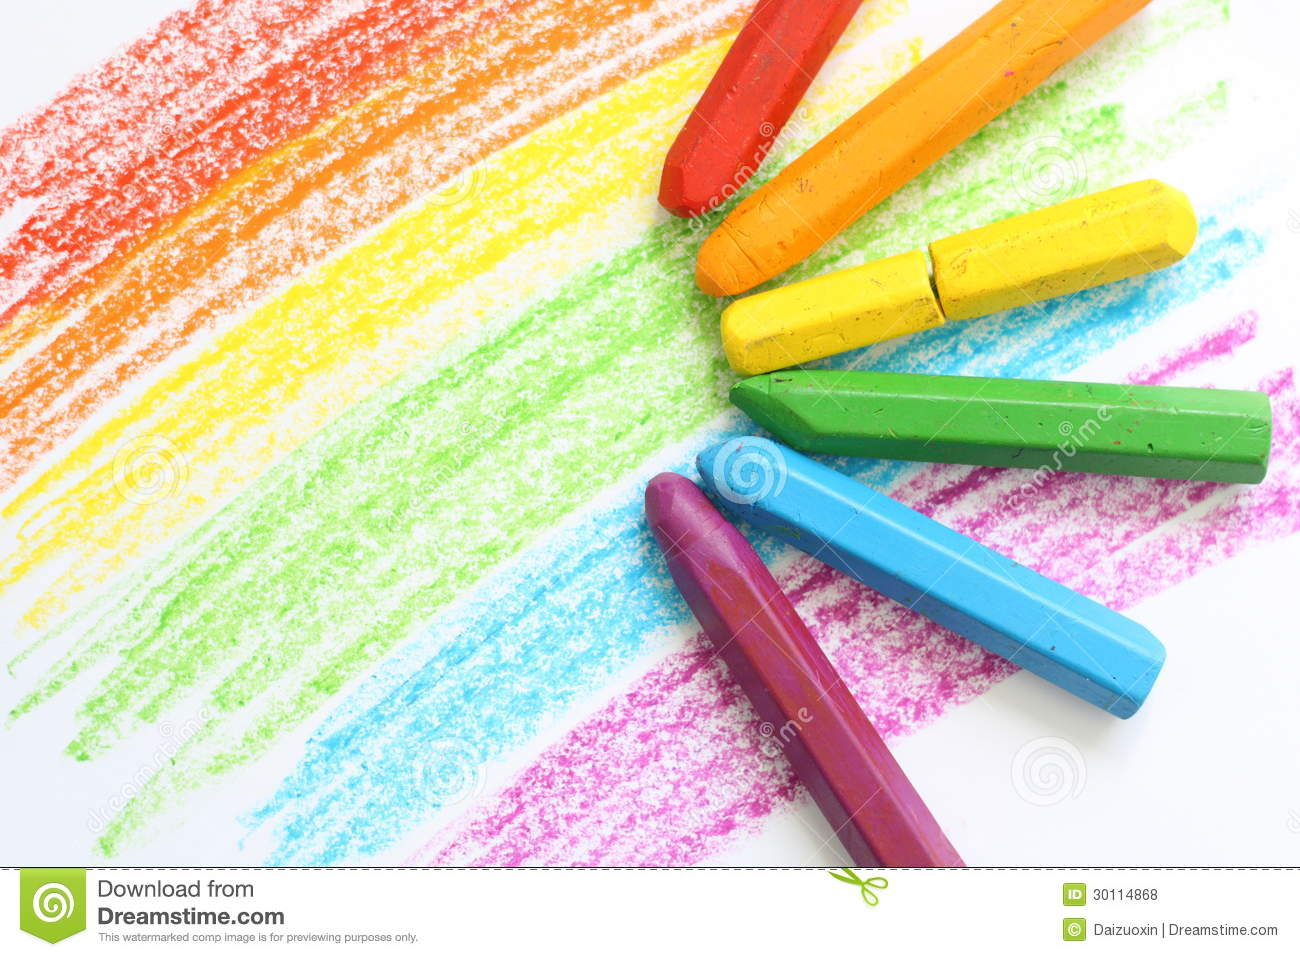 Crayon colors stock photo. Image of drawing, group, creative - 30114868